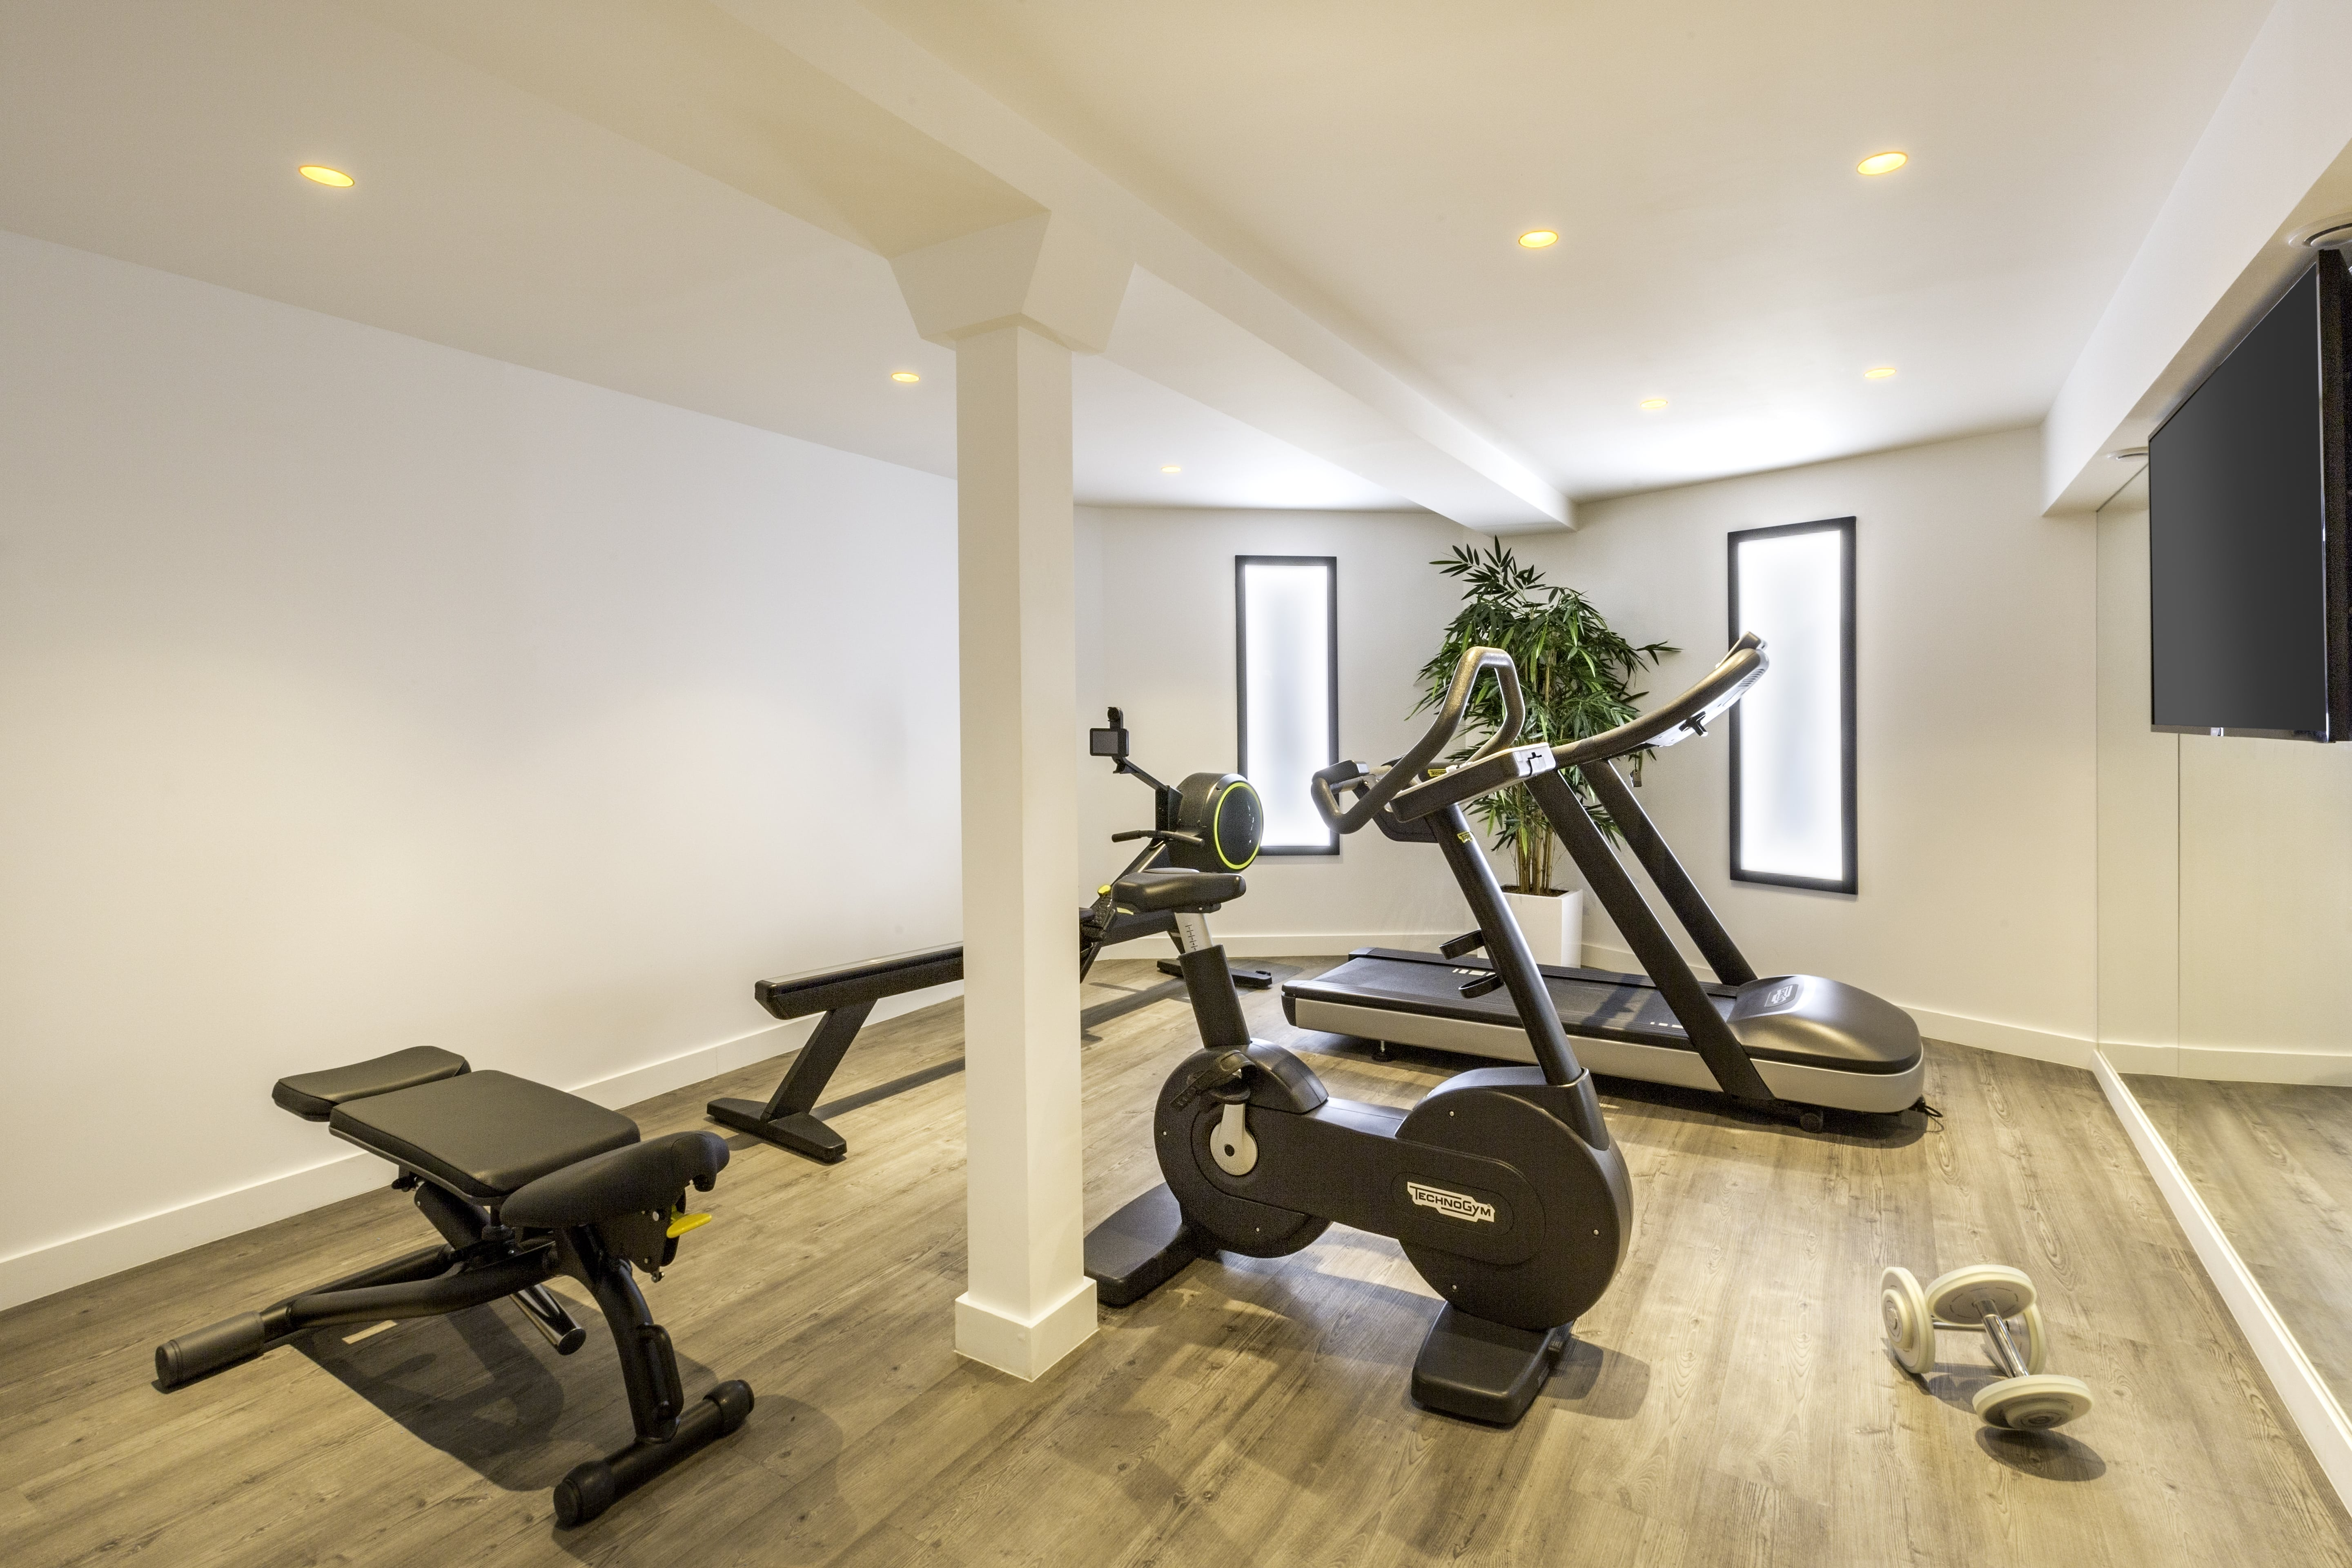 Best Western Plus la demeure gym